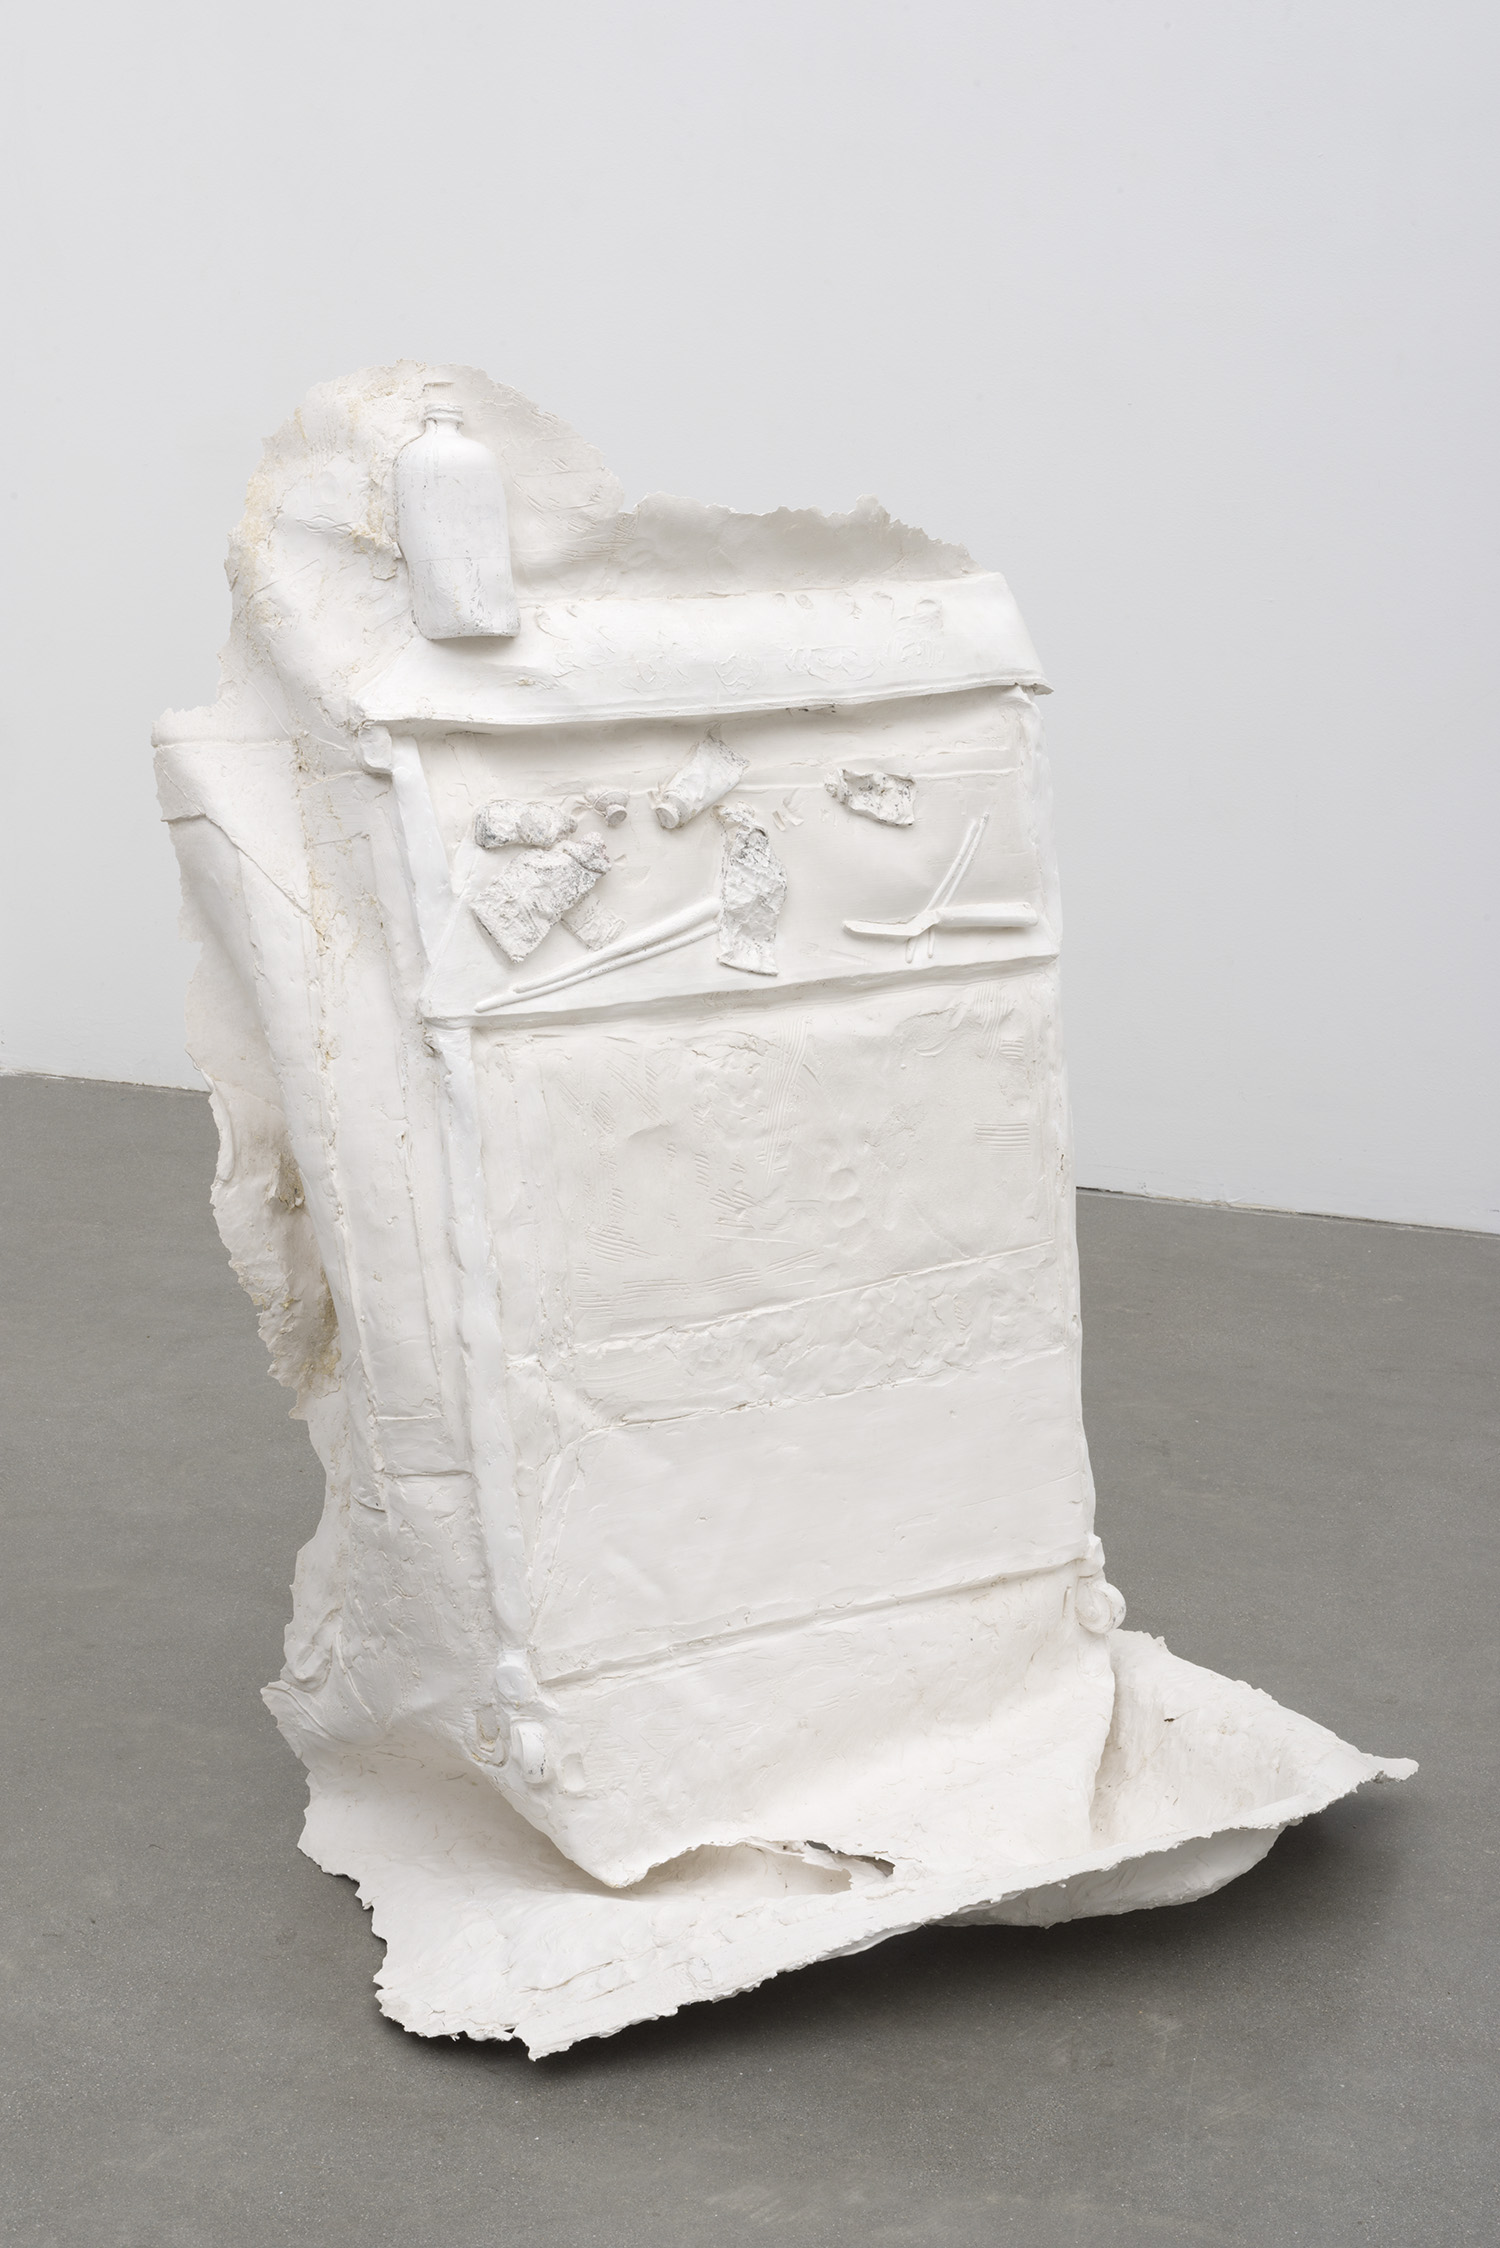 Palette , 2014 Gypsum cement, fiberglass cloth 48 x 36 x 24 inches